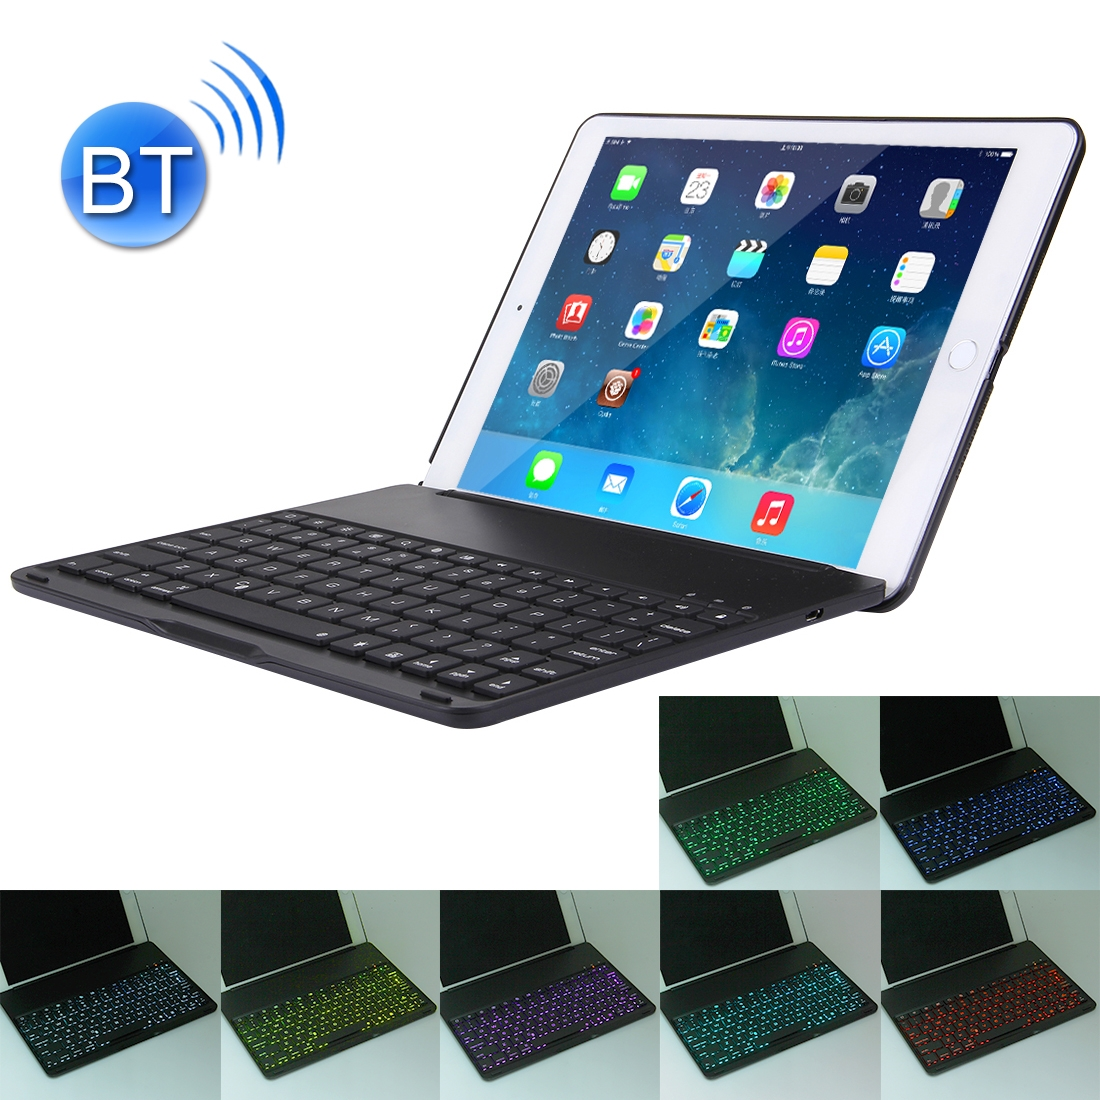 iPad Air 2 Case With Keyboard For iPad Air 2, Protective Case With Backlit Bluetooth (Black)